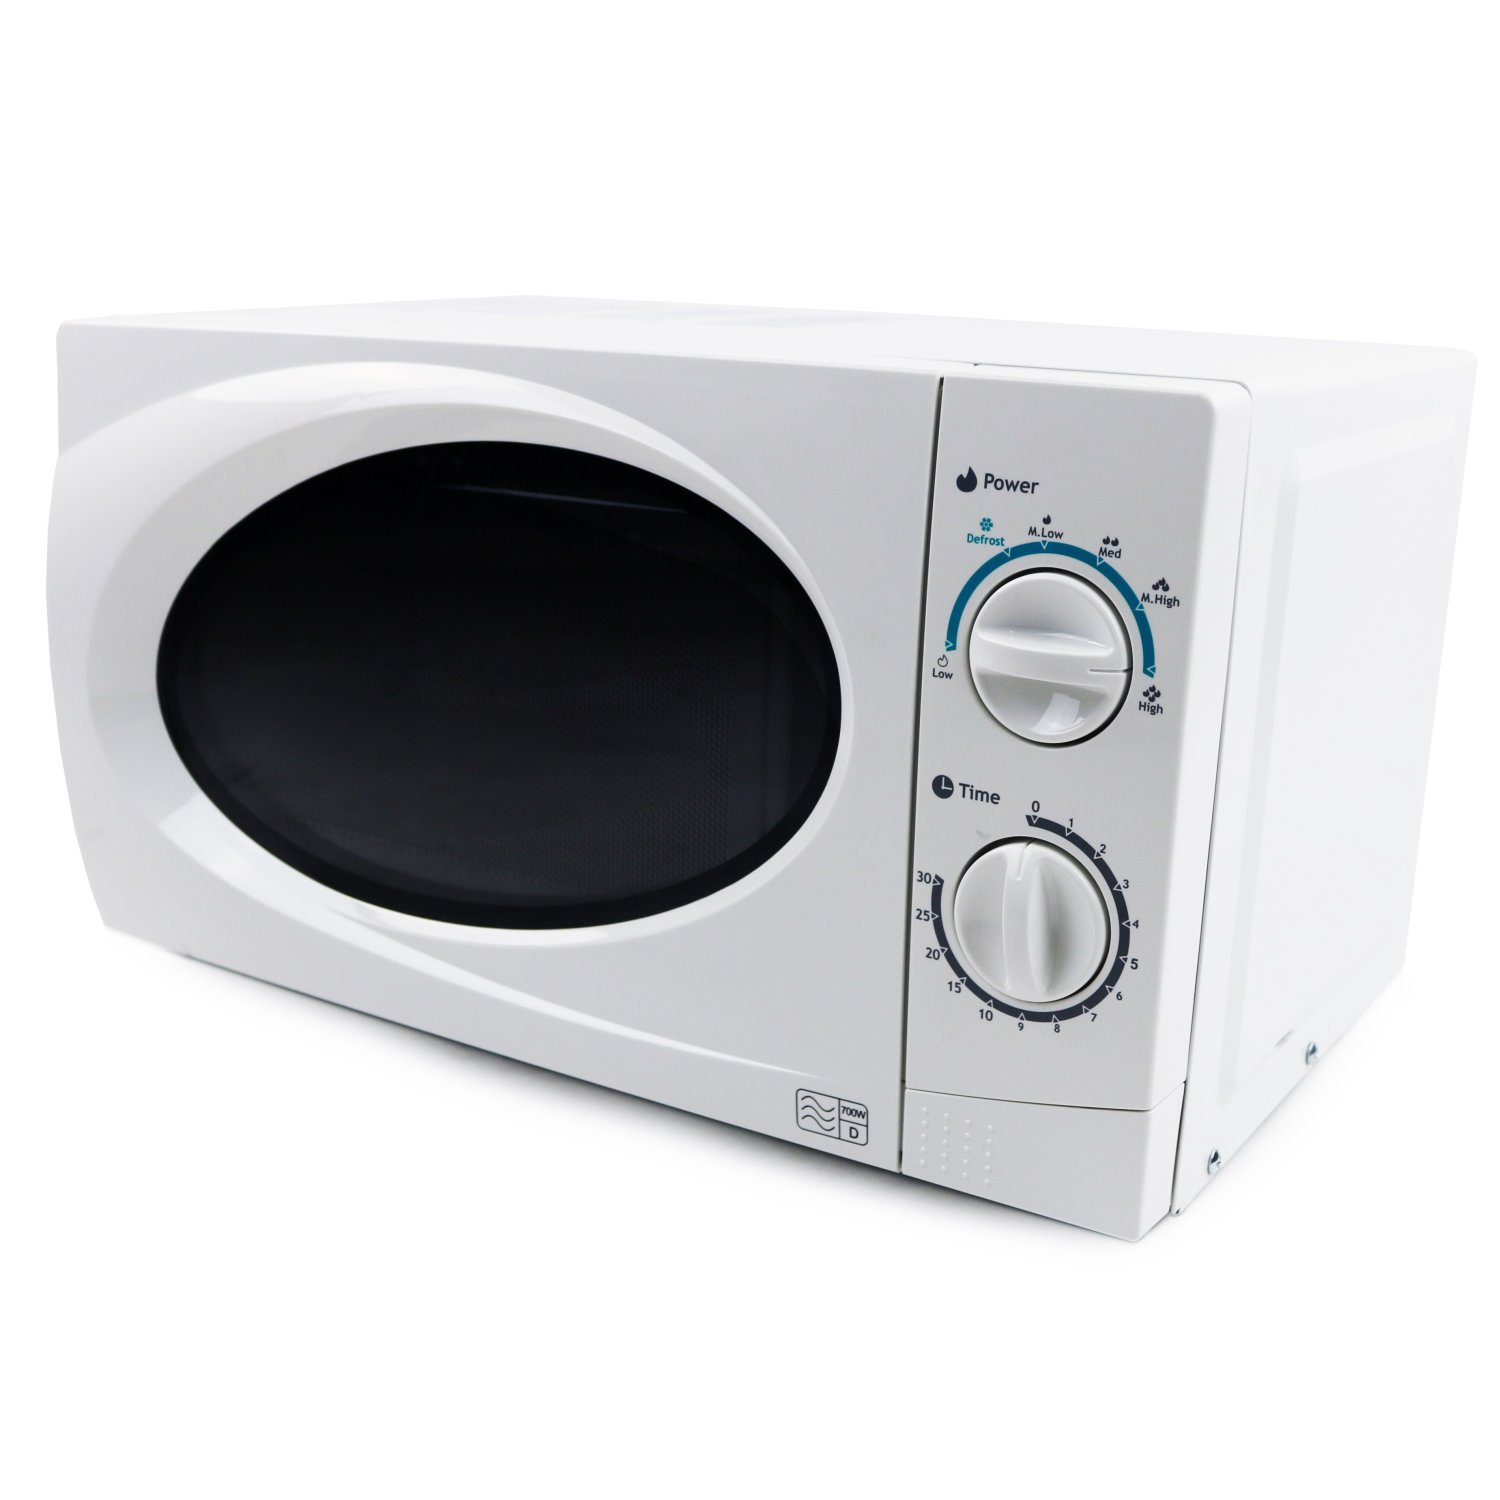 700w Compact Microwave Oven 163 44 99 Oypla Stocking